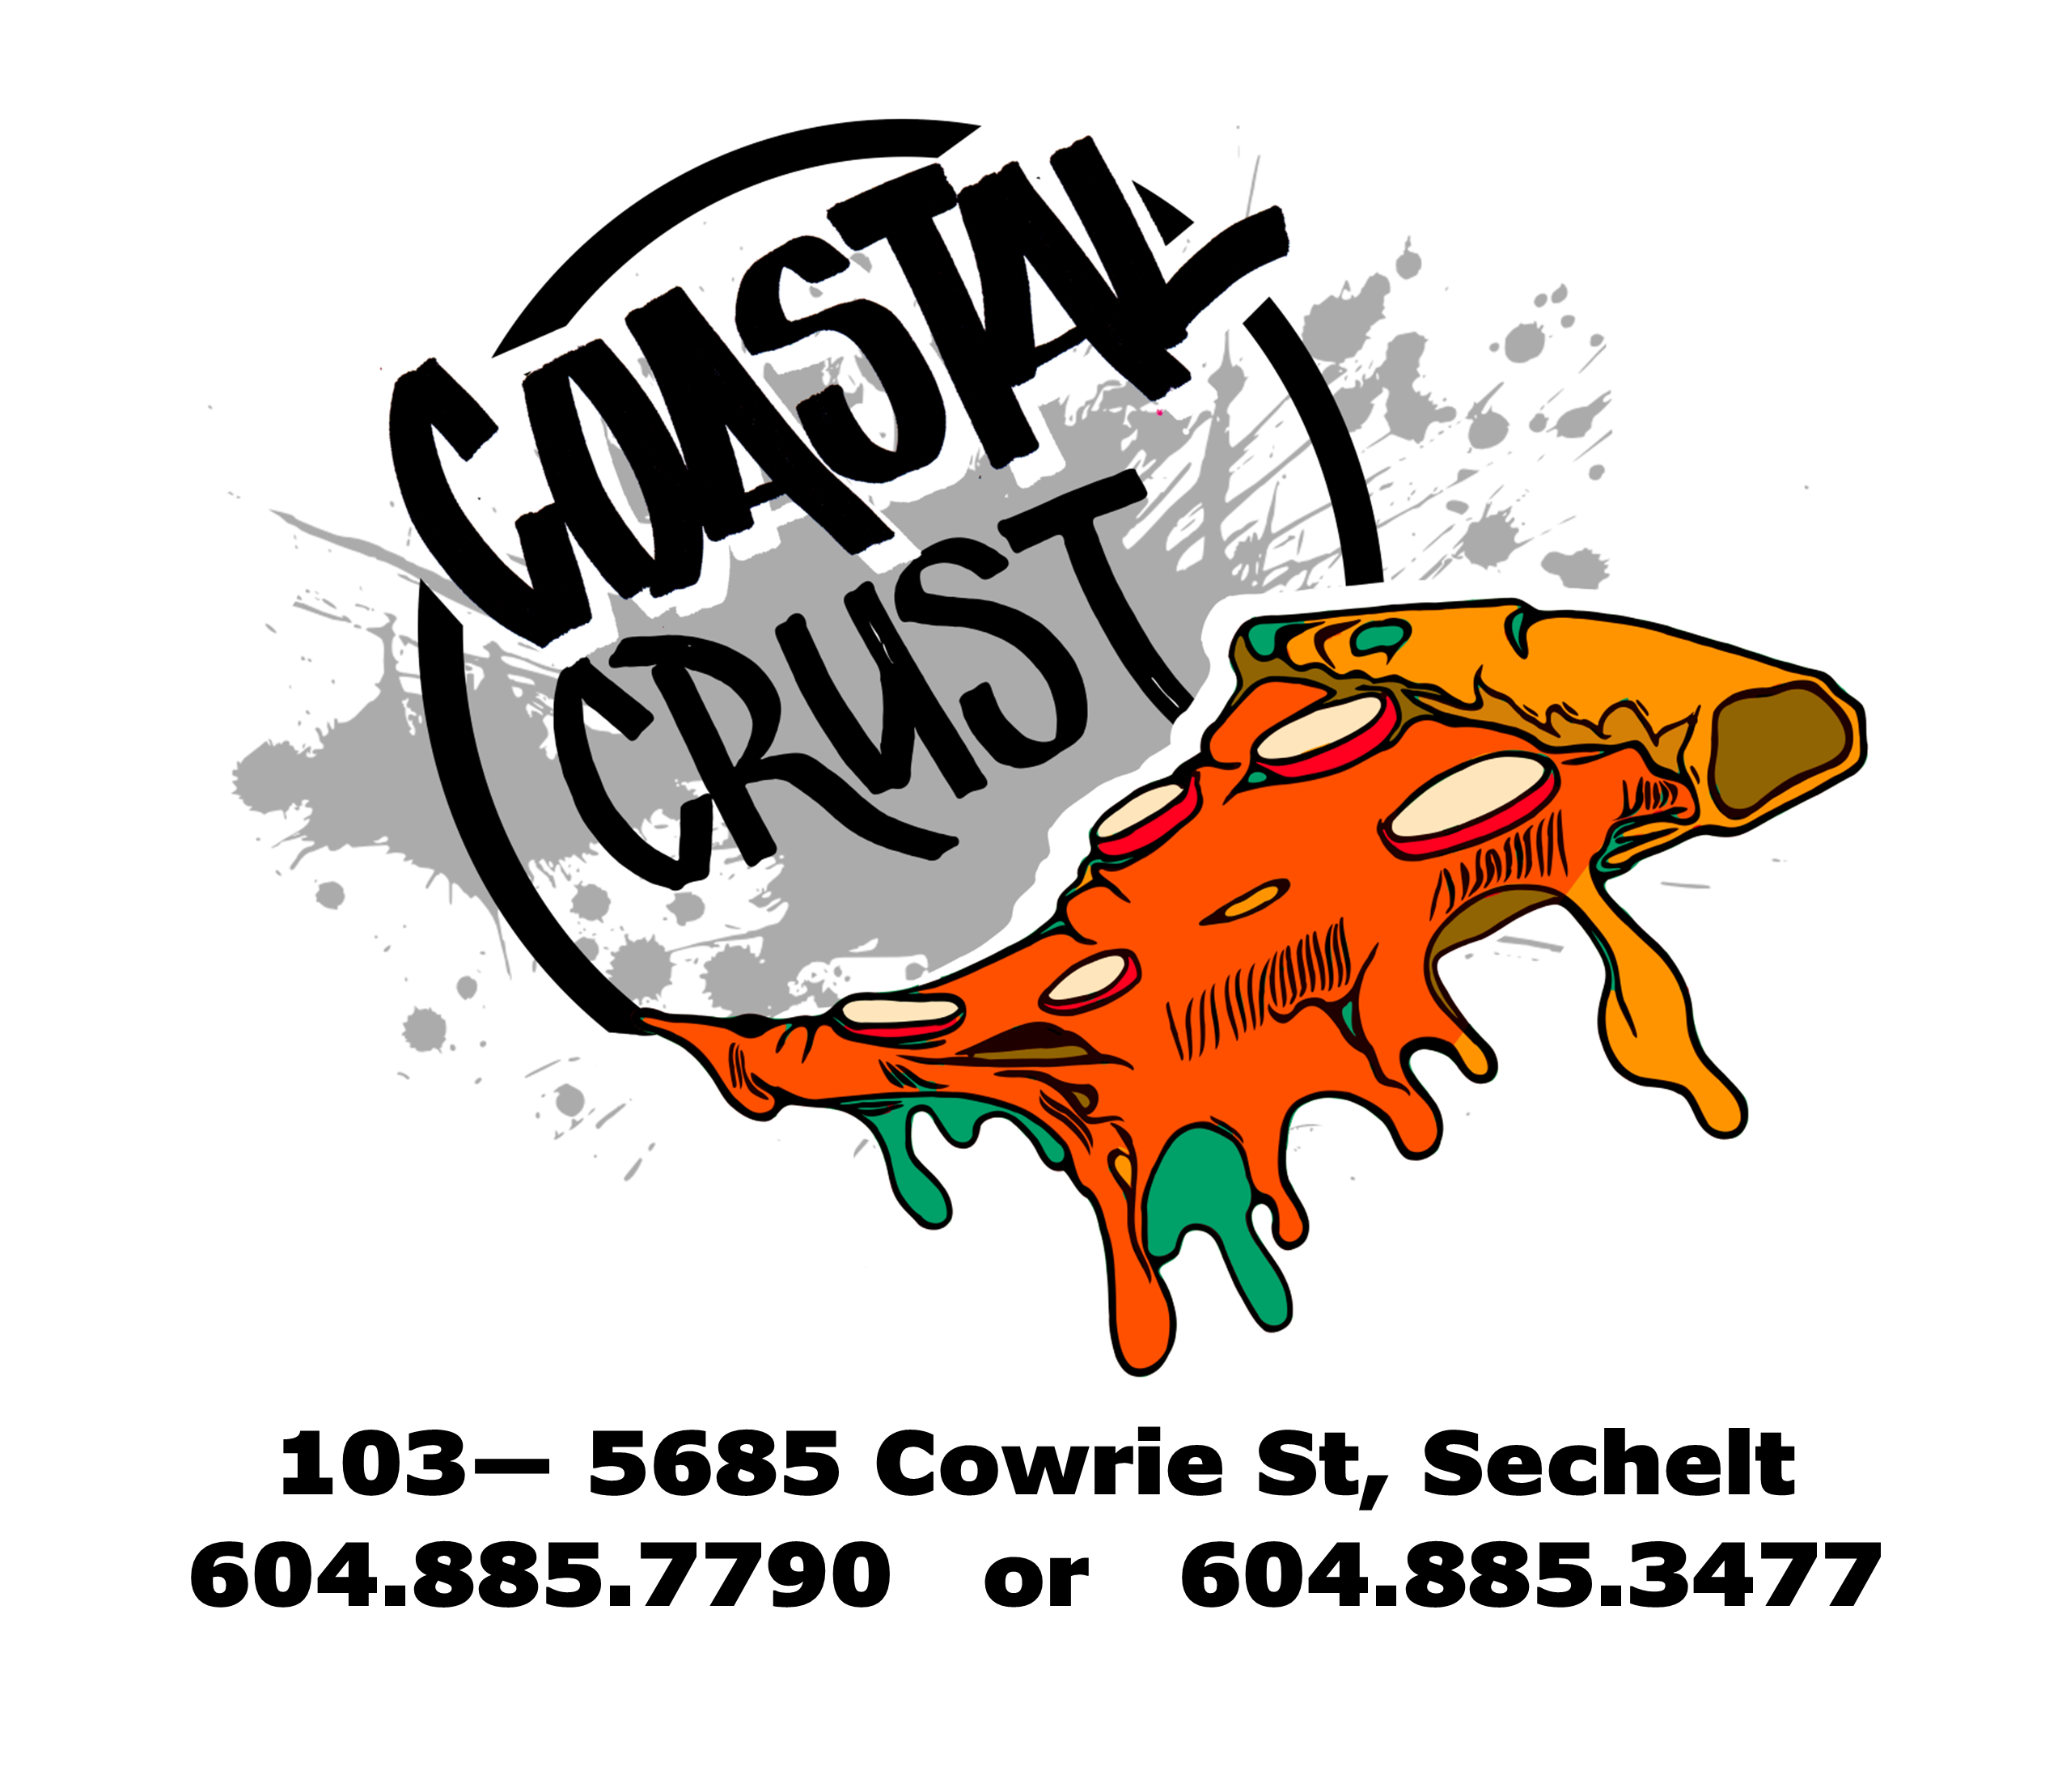 Coastal Crust Pizza